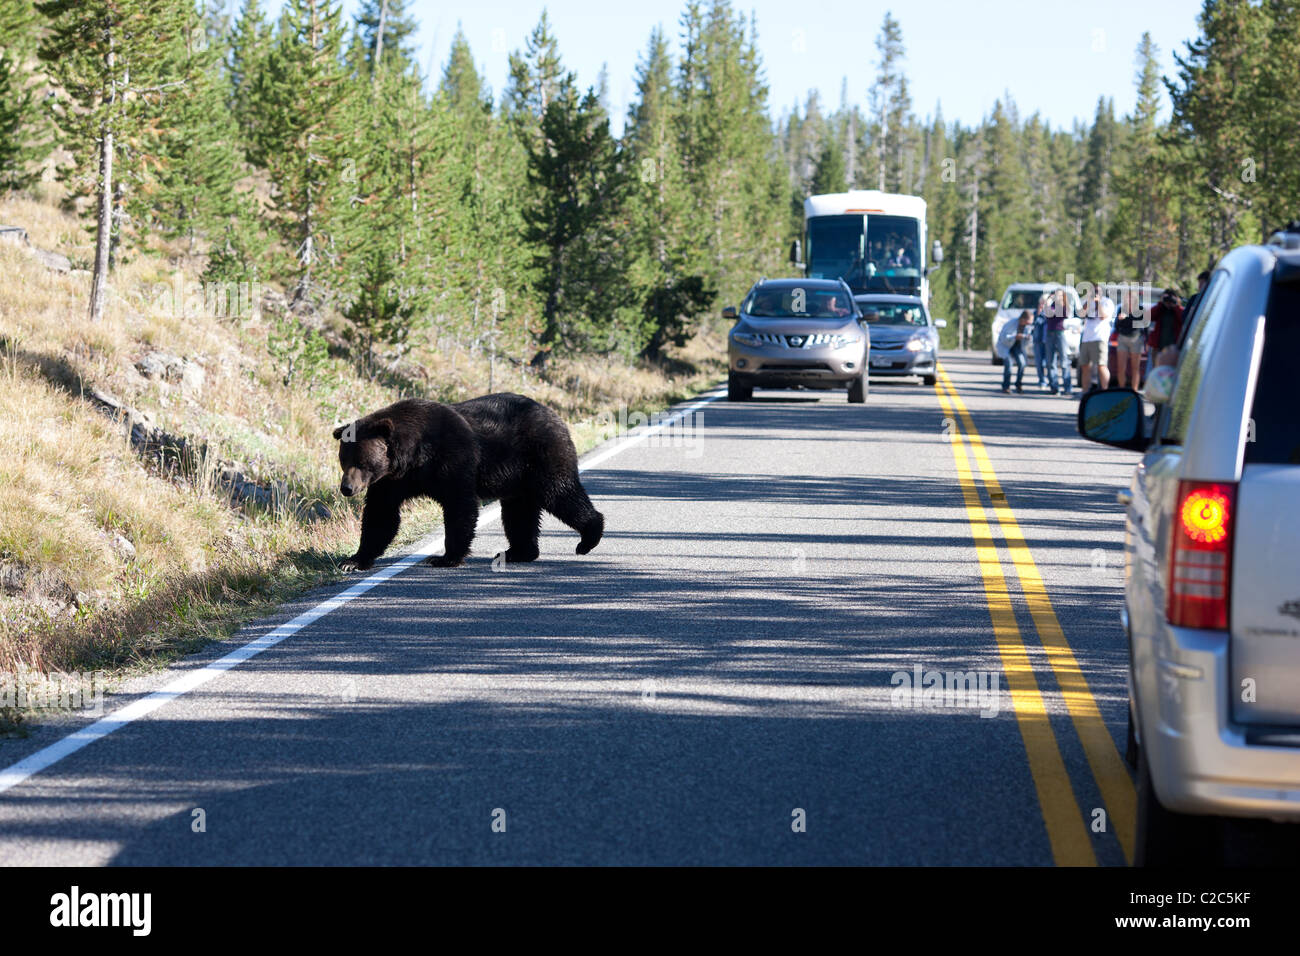 BEWARE OF THE BEAR. A Grizzly bear has created a traffic jam in Yellowstone National Park, Wyoming, USA. - Stock Image